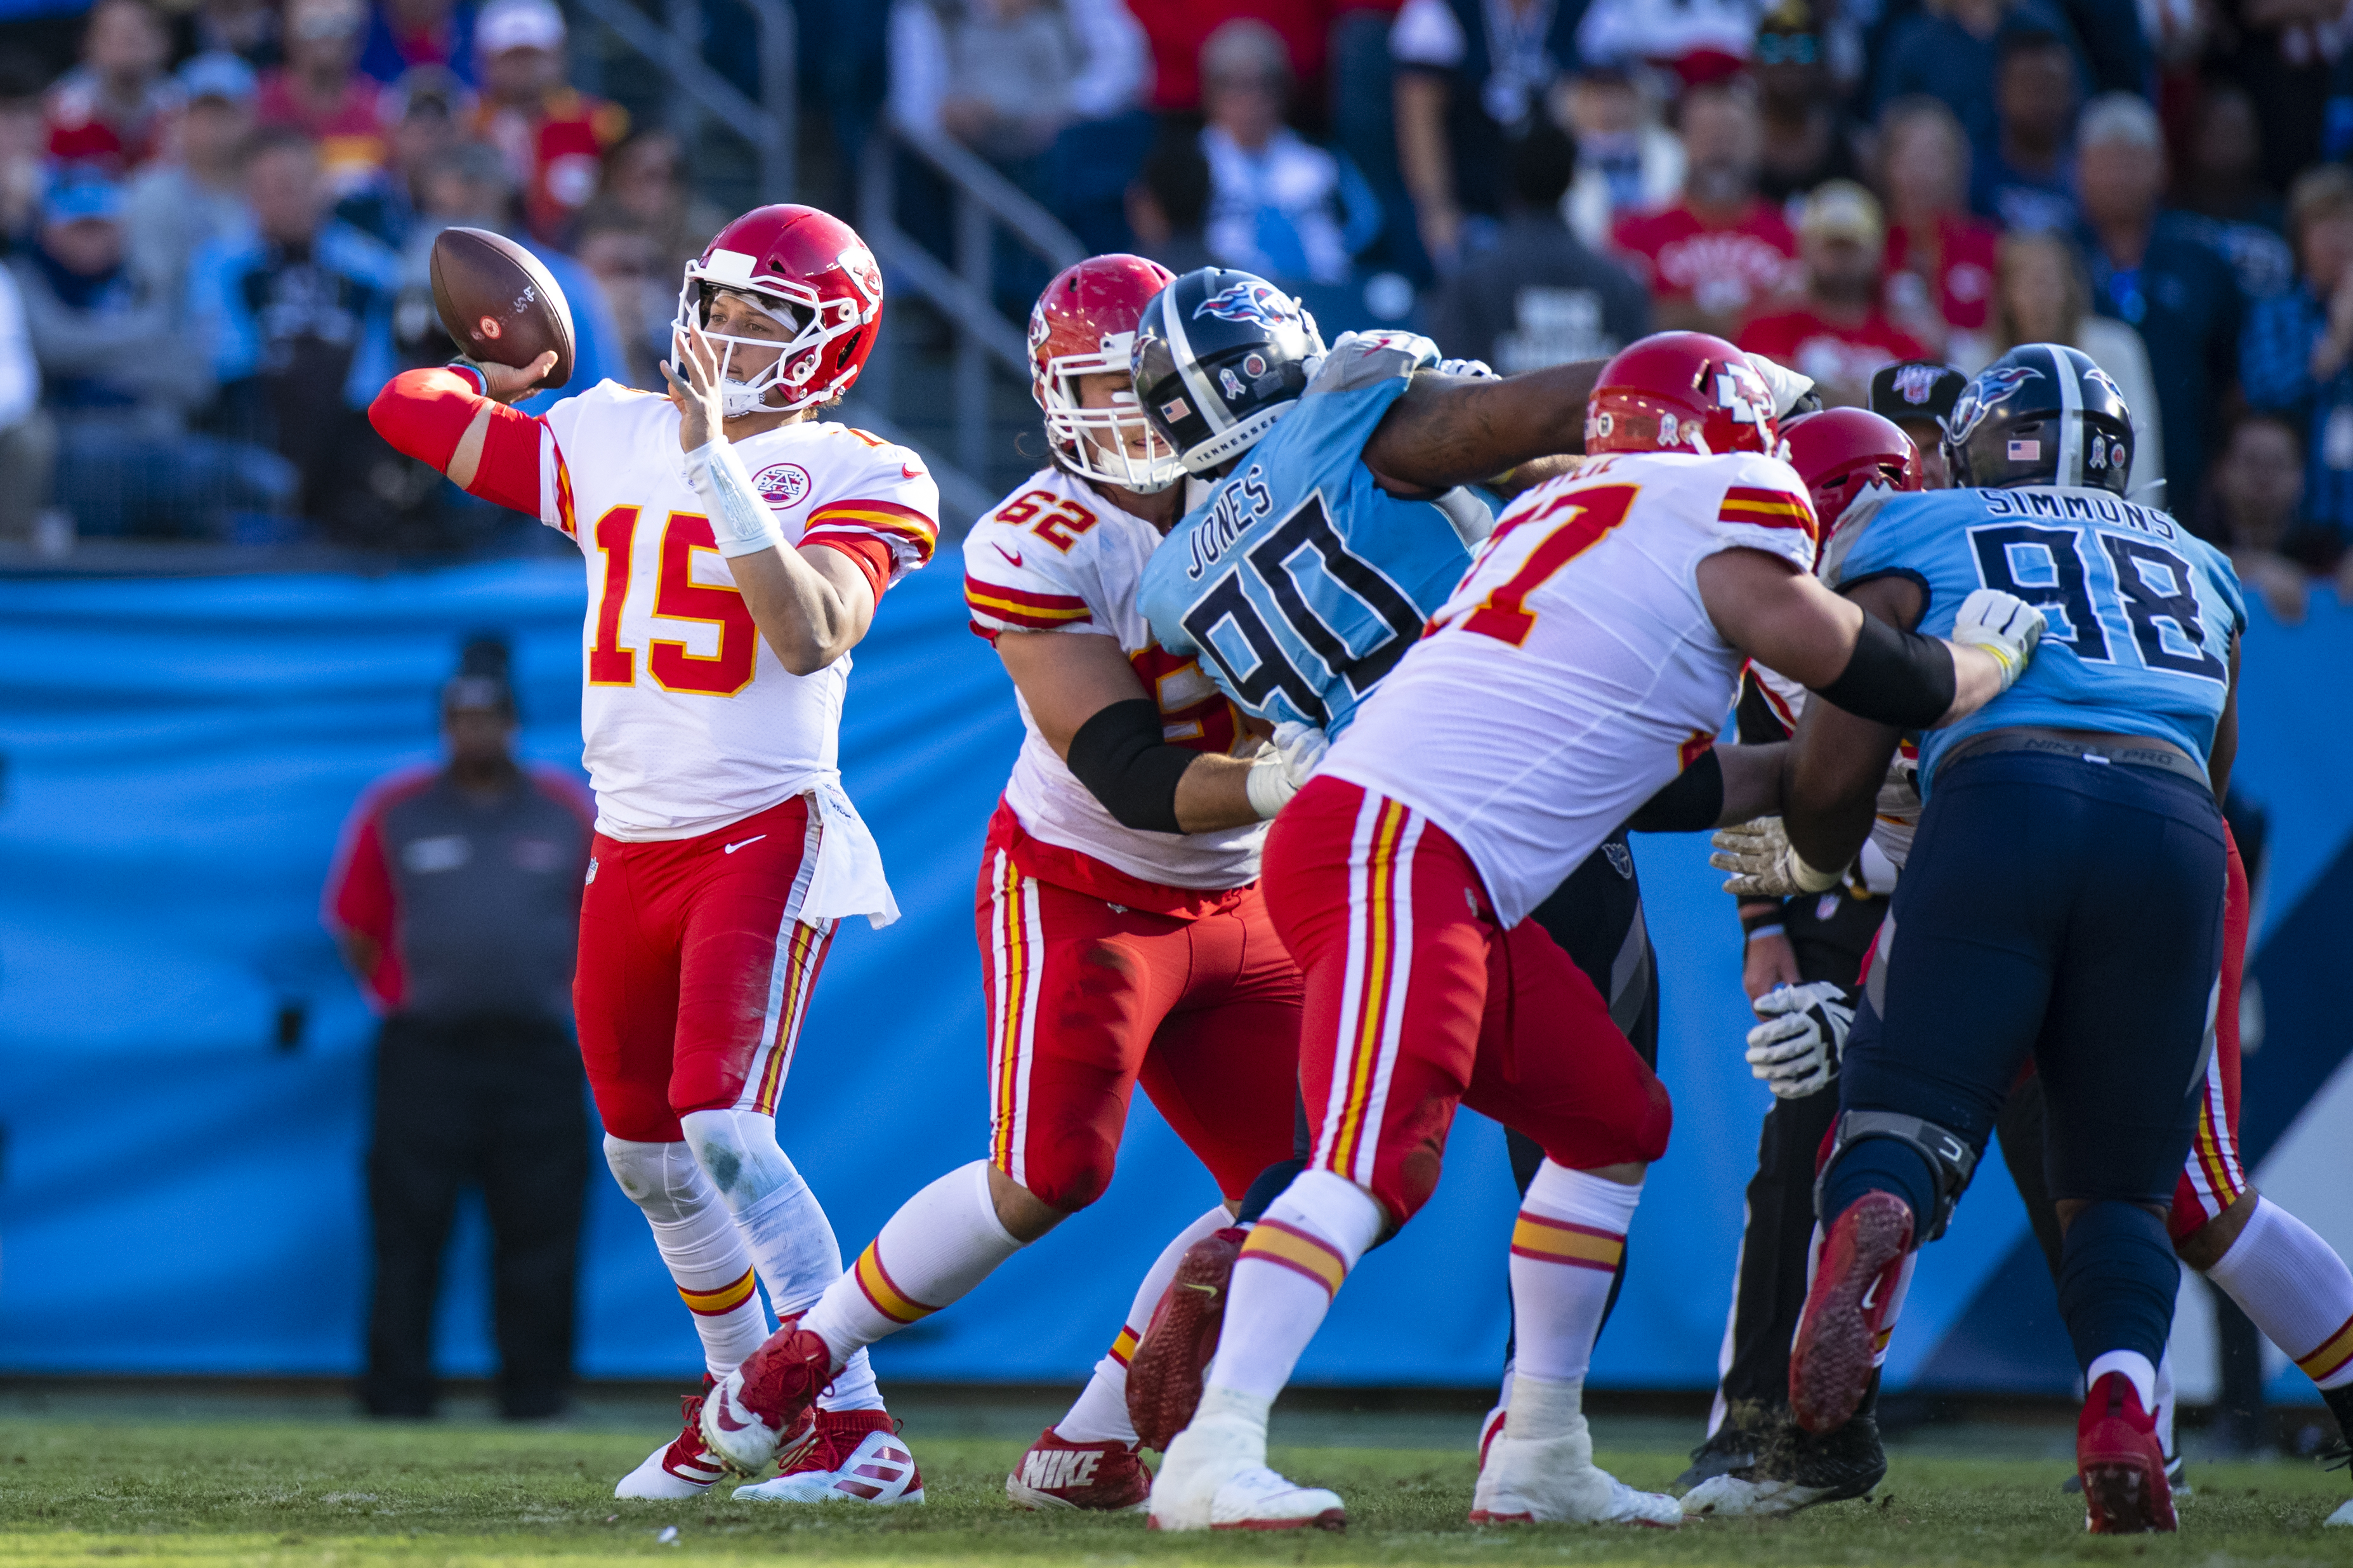 Patrick Mahomes of the Kansas City Chiefs passes the ball during the fourth quarter against the Tennessee Titans at Nissan Stadium on November 10, 2019 in Nashville, Tennessee.